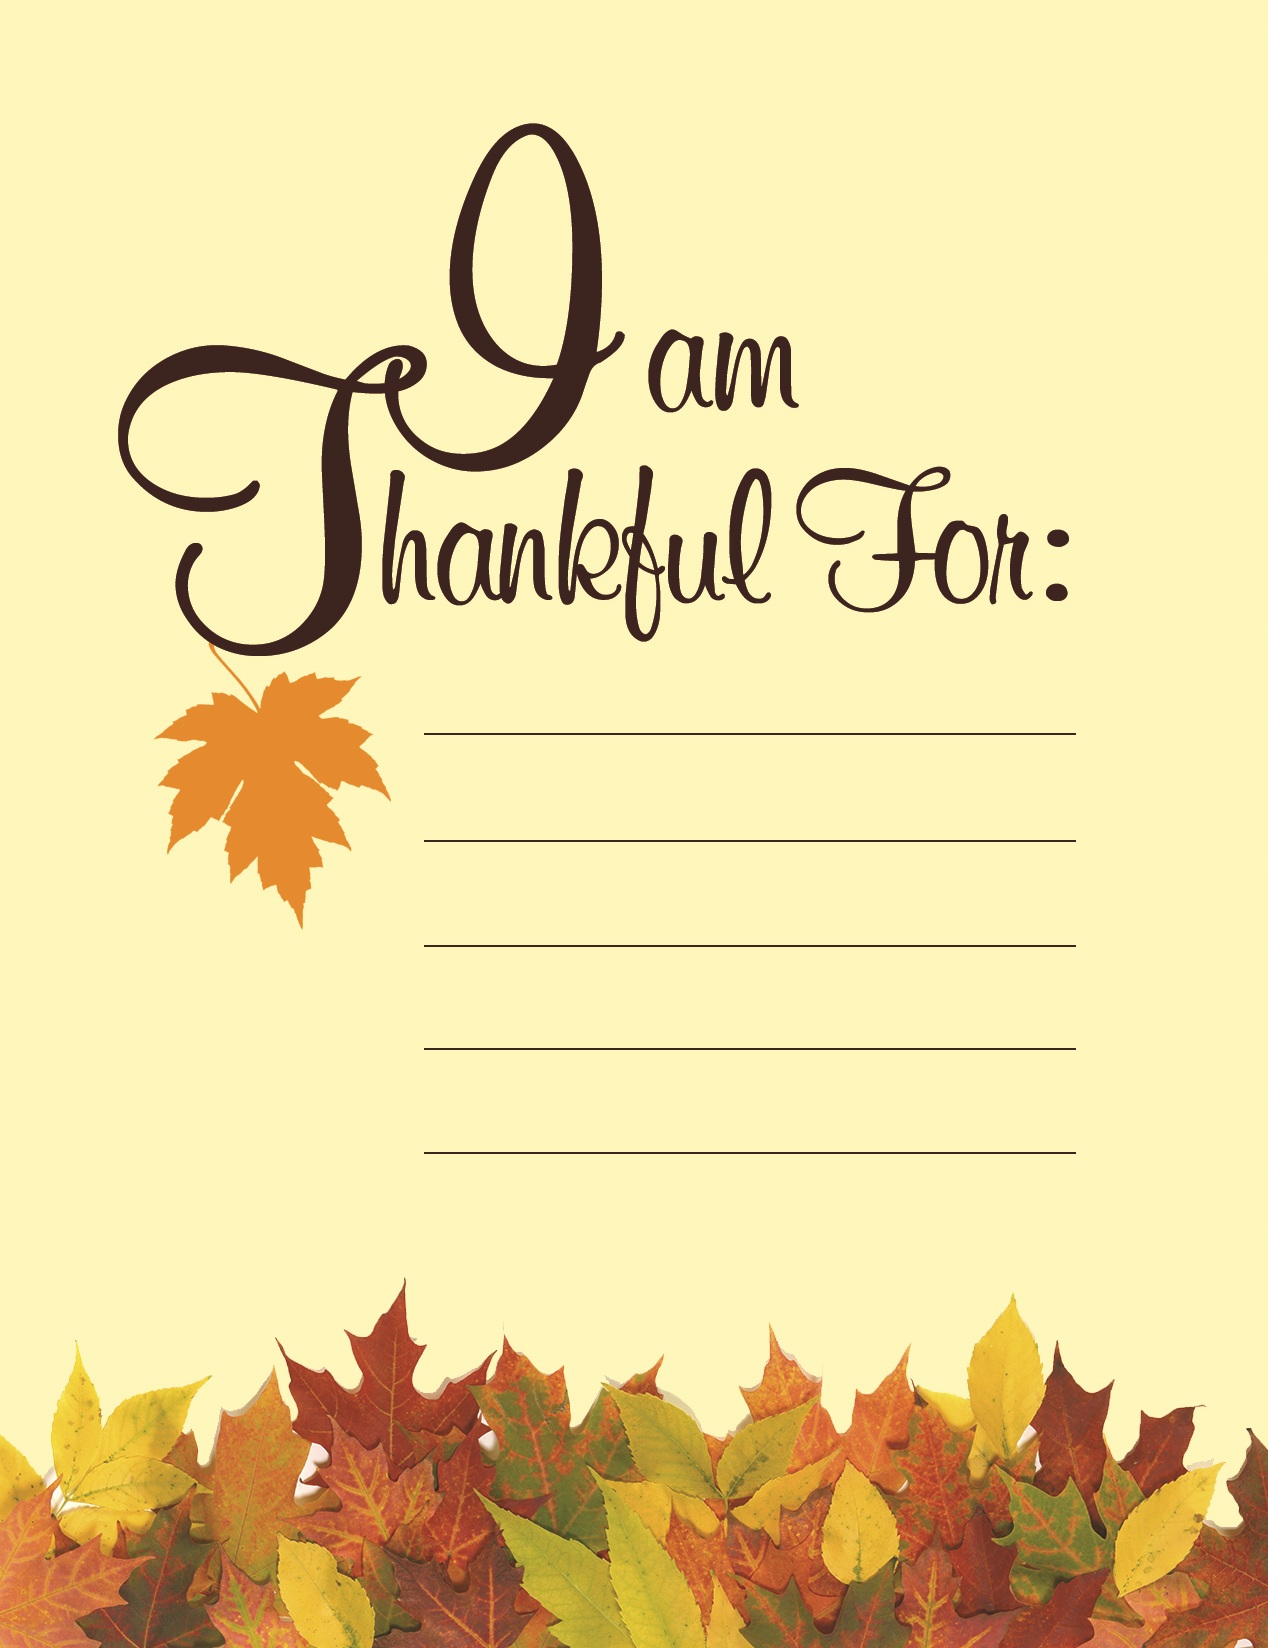 Gratitude This Thanksgiving